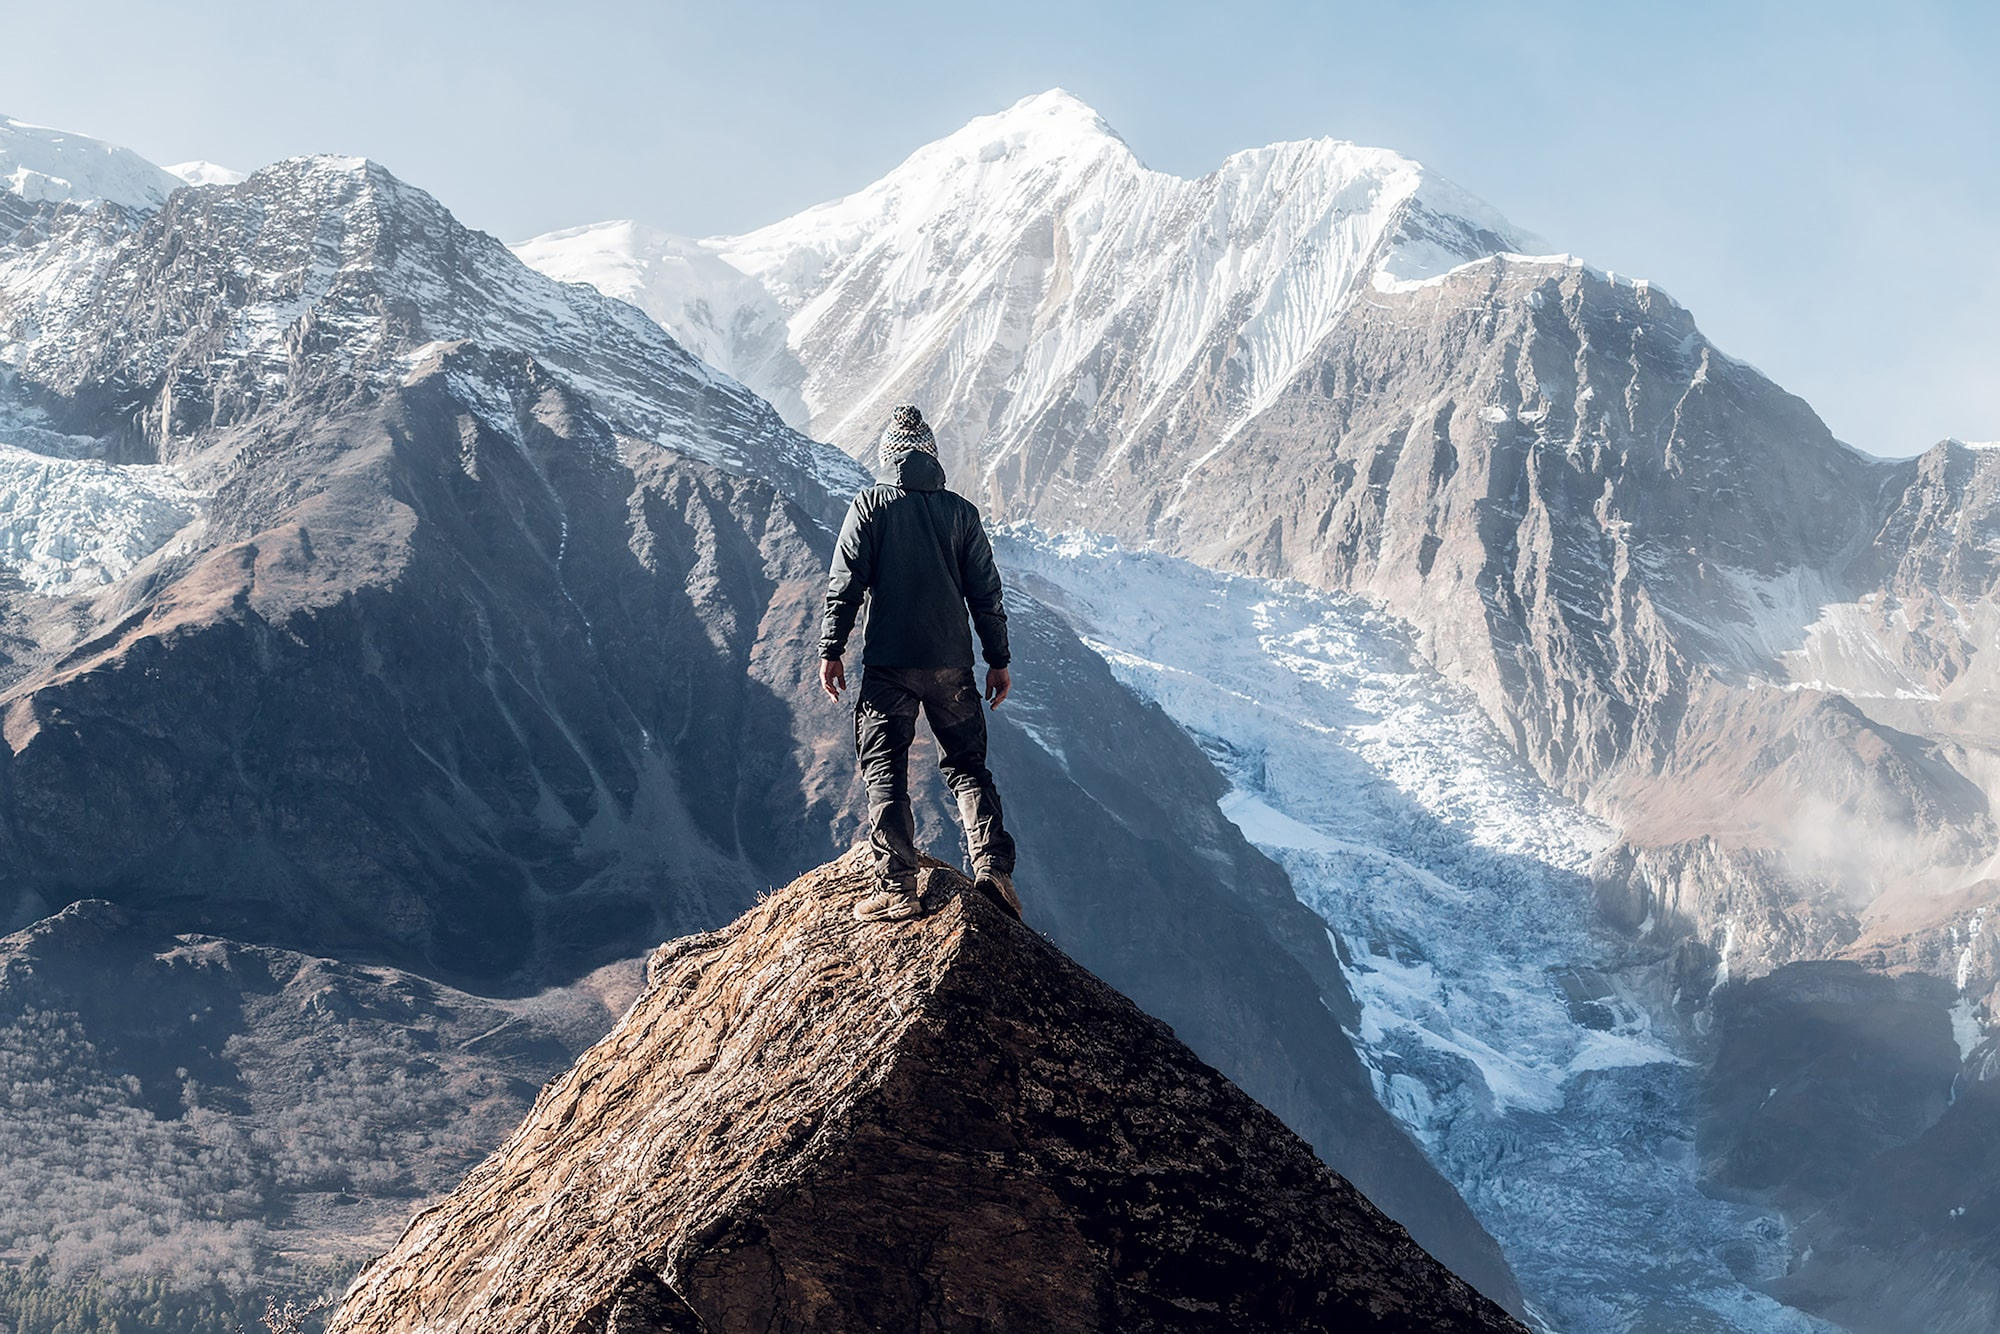 tolis fragoudis sony alpha 7RII man stands on the peak of a mountain gazing at distant snow covered mountains